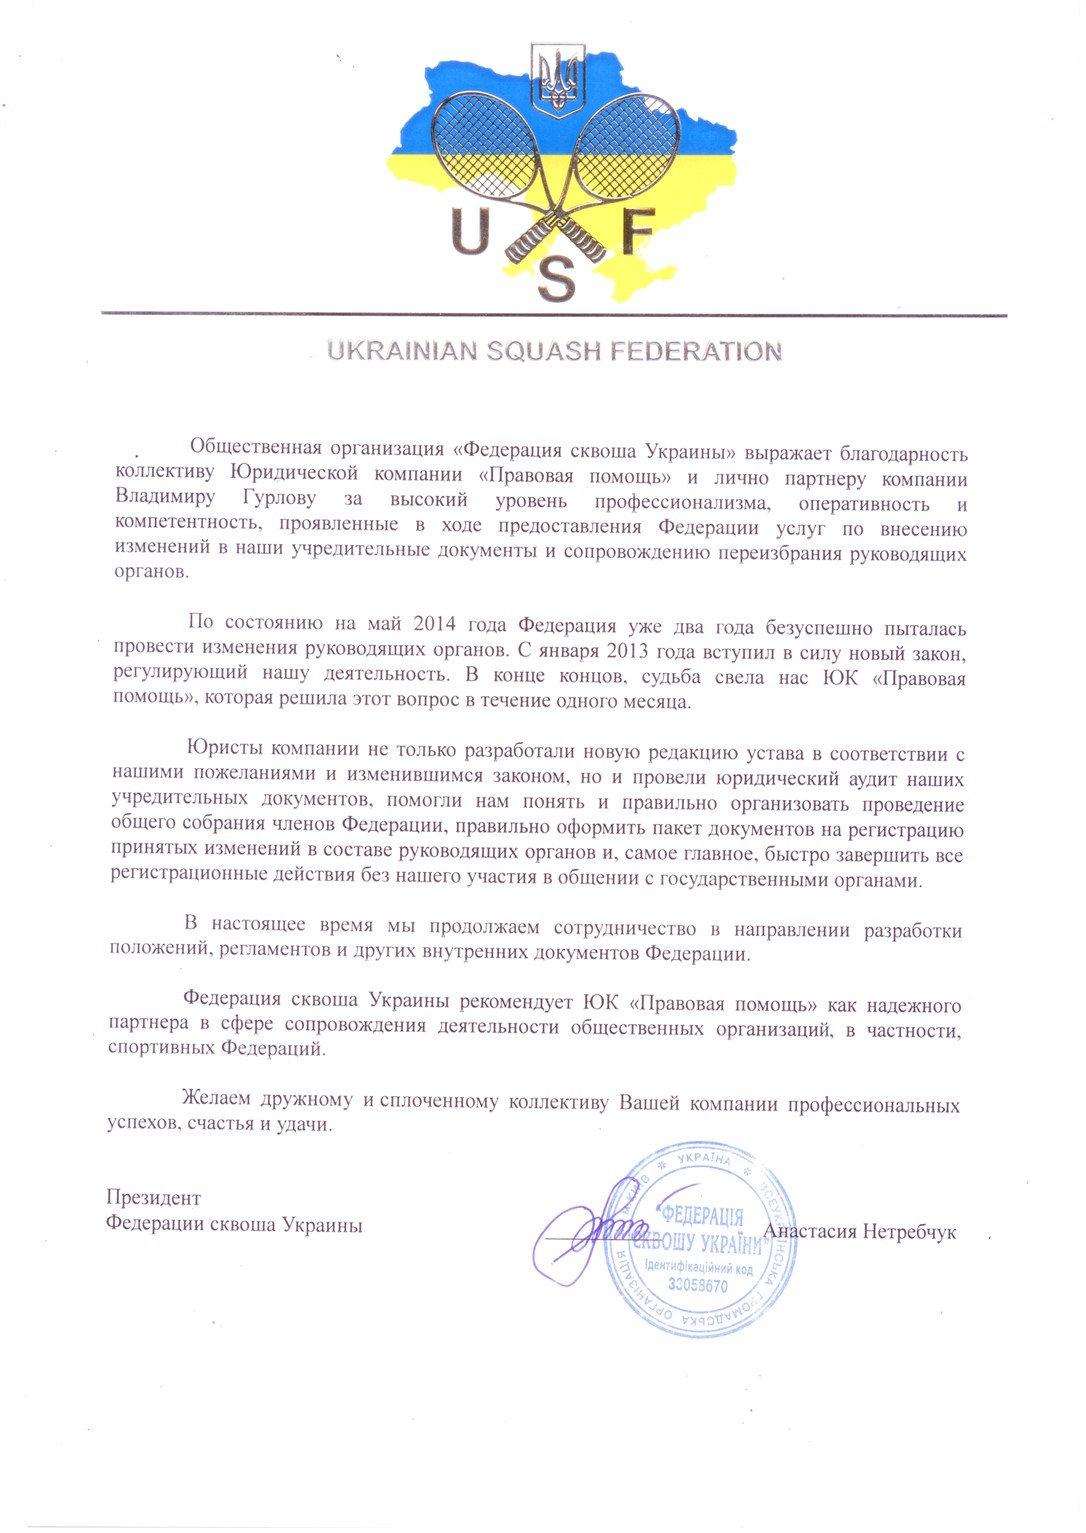 Receiving of official invitation letter for obtainment of president a netrebchuk ukrainian squash federation stopboris Images